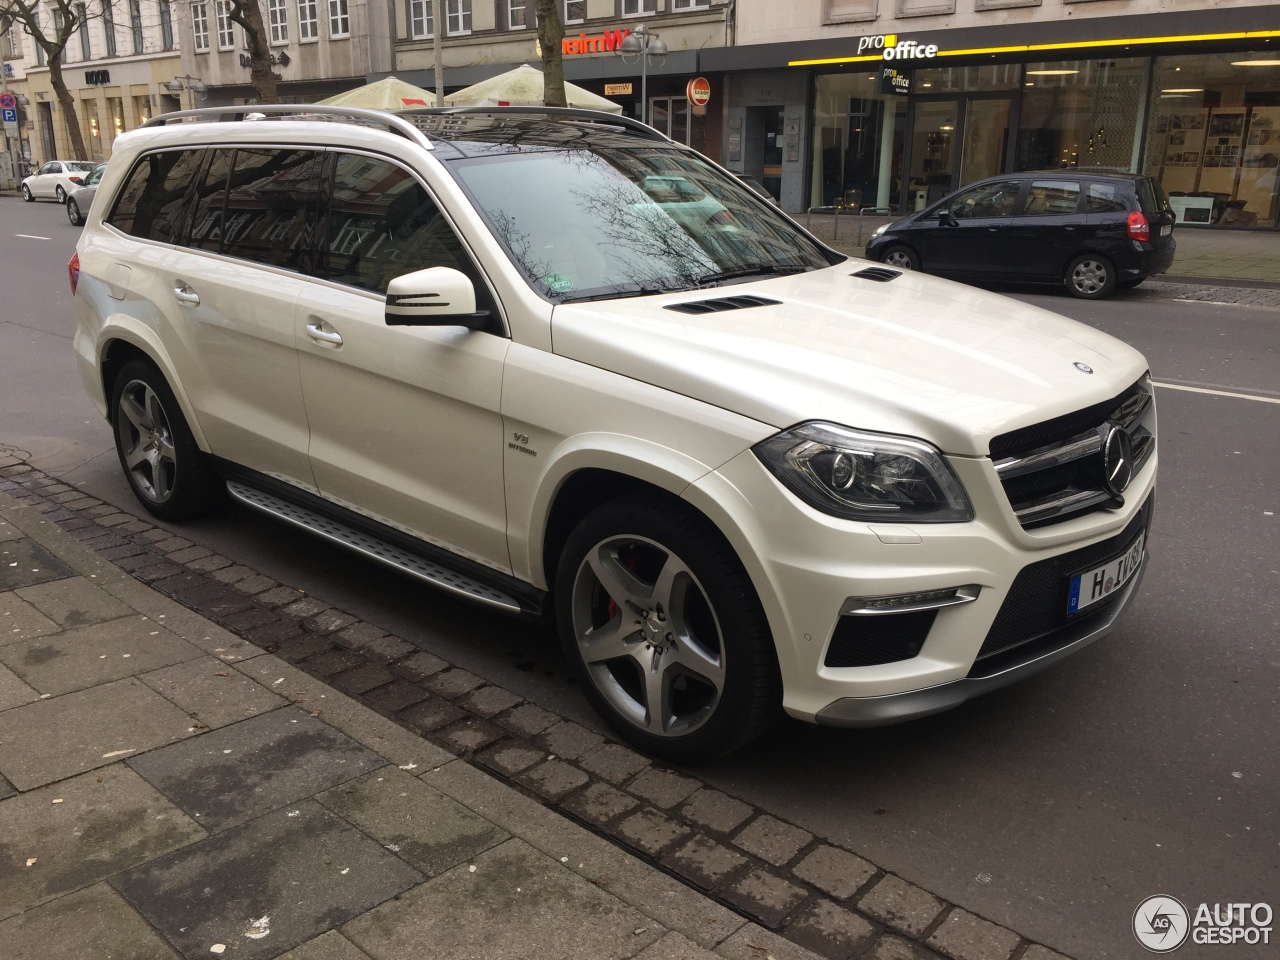 Mercedes benz gl 63 amg x166 9 january 2018 autogespot for Mercedes benz gl 63 amg